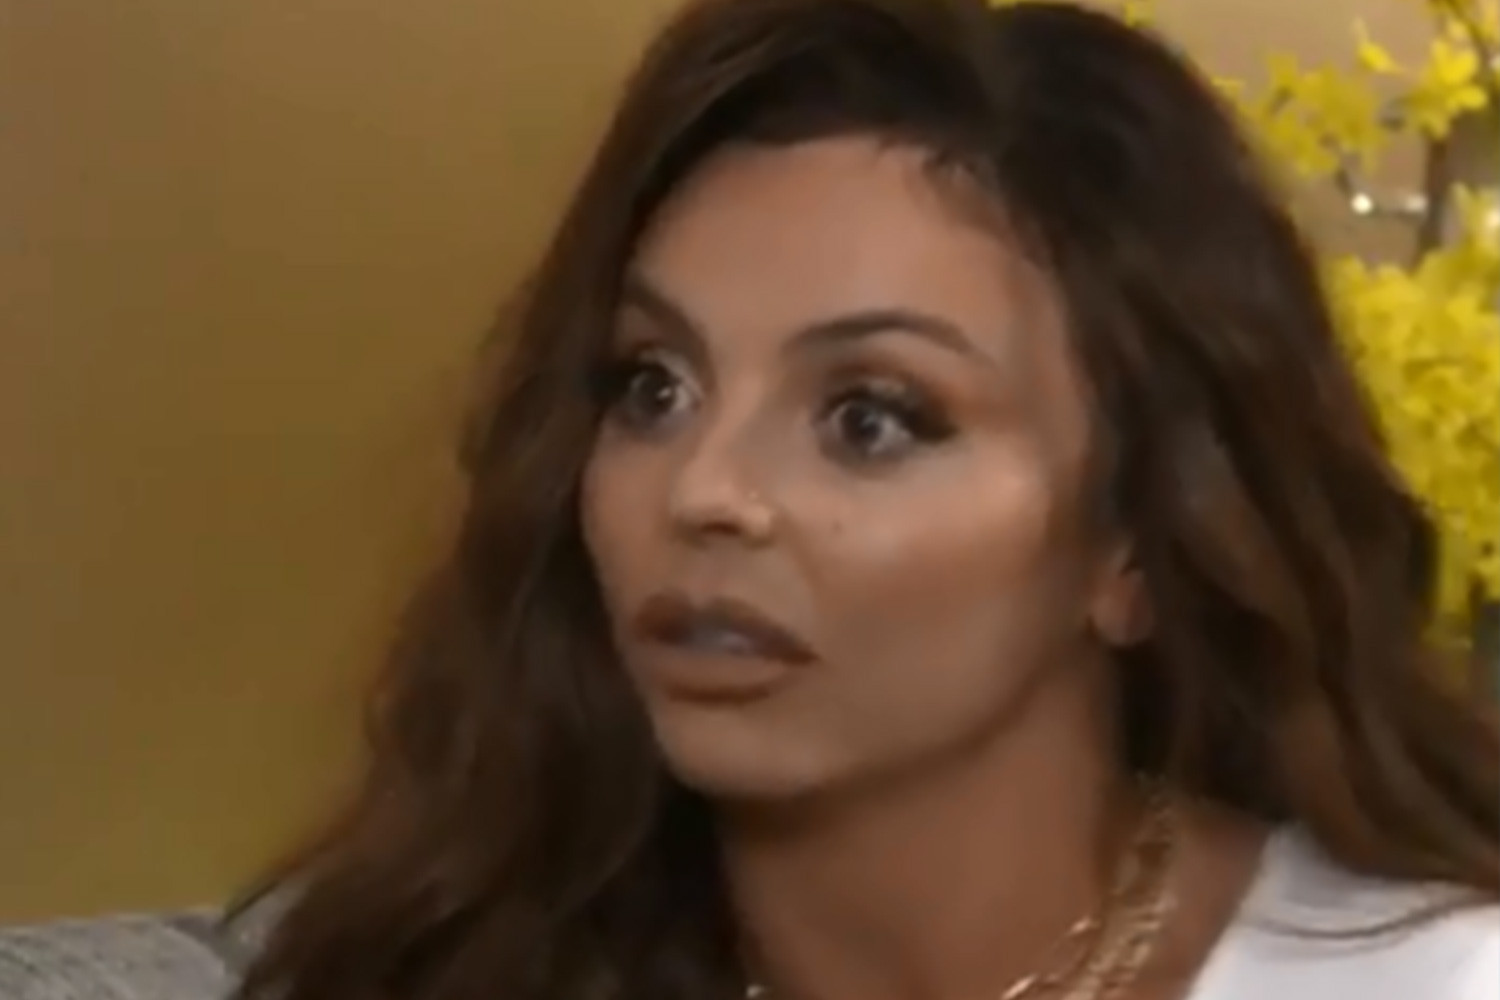 Jesy Nelson begged fans to delete old snaps of her because she 'hated' herself and didn't want Chris Hughes to see them – The Sun